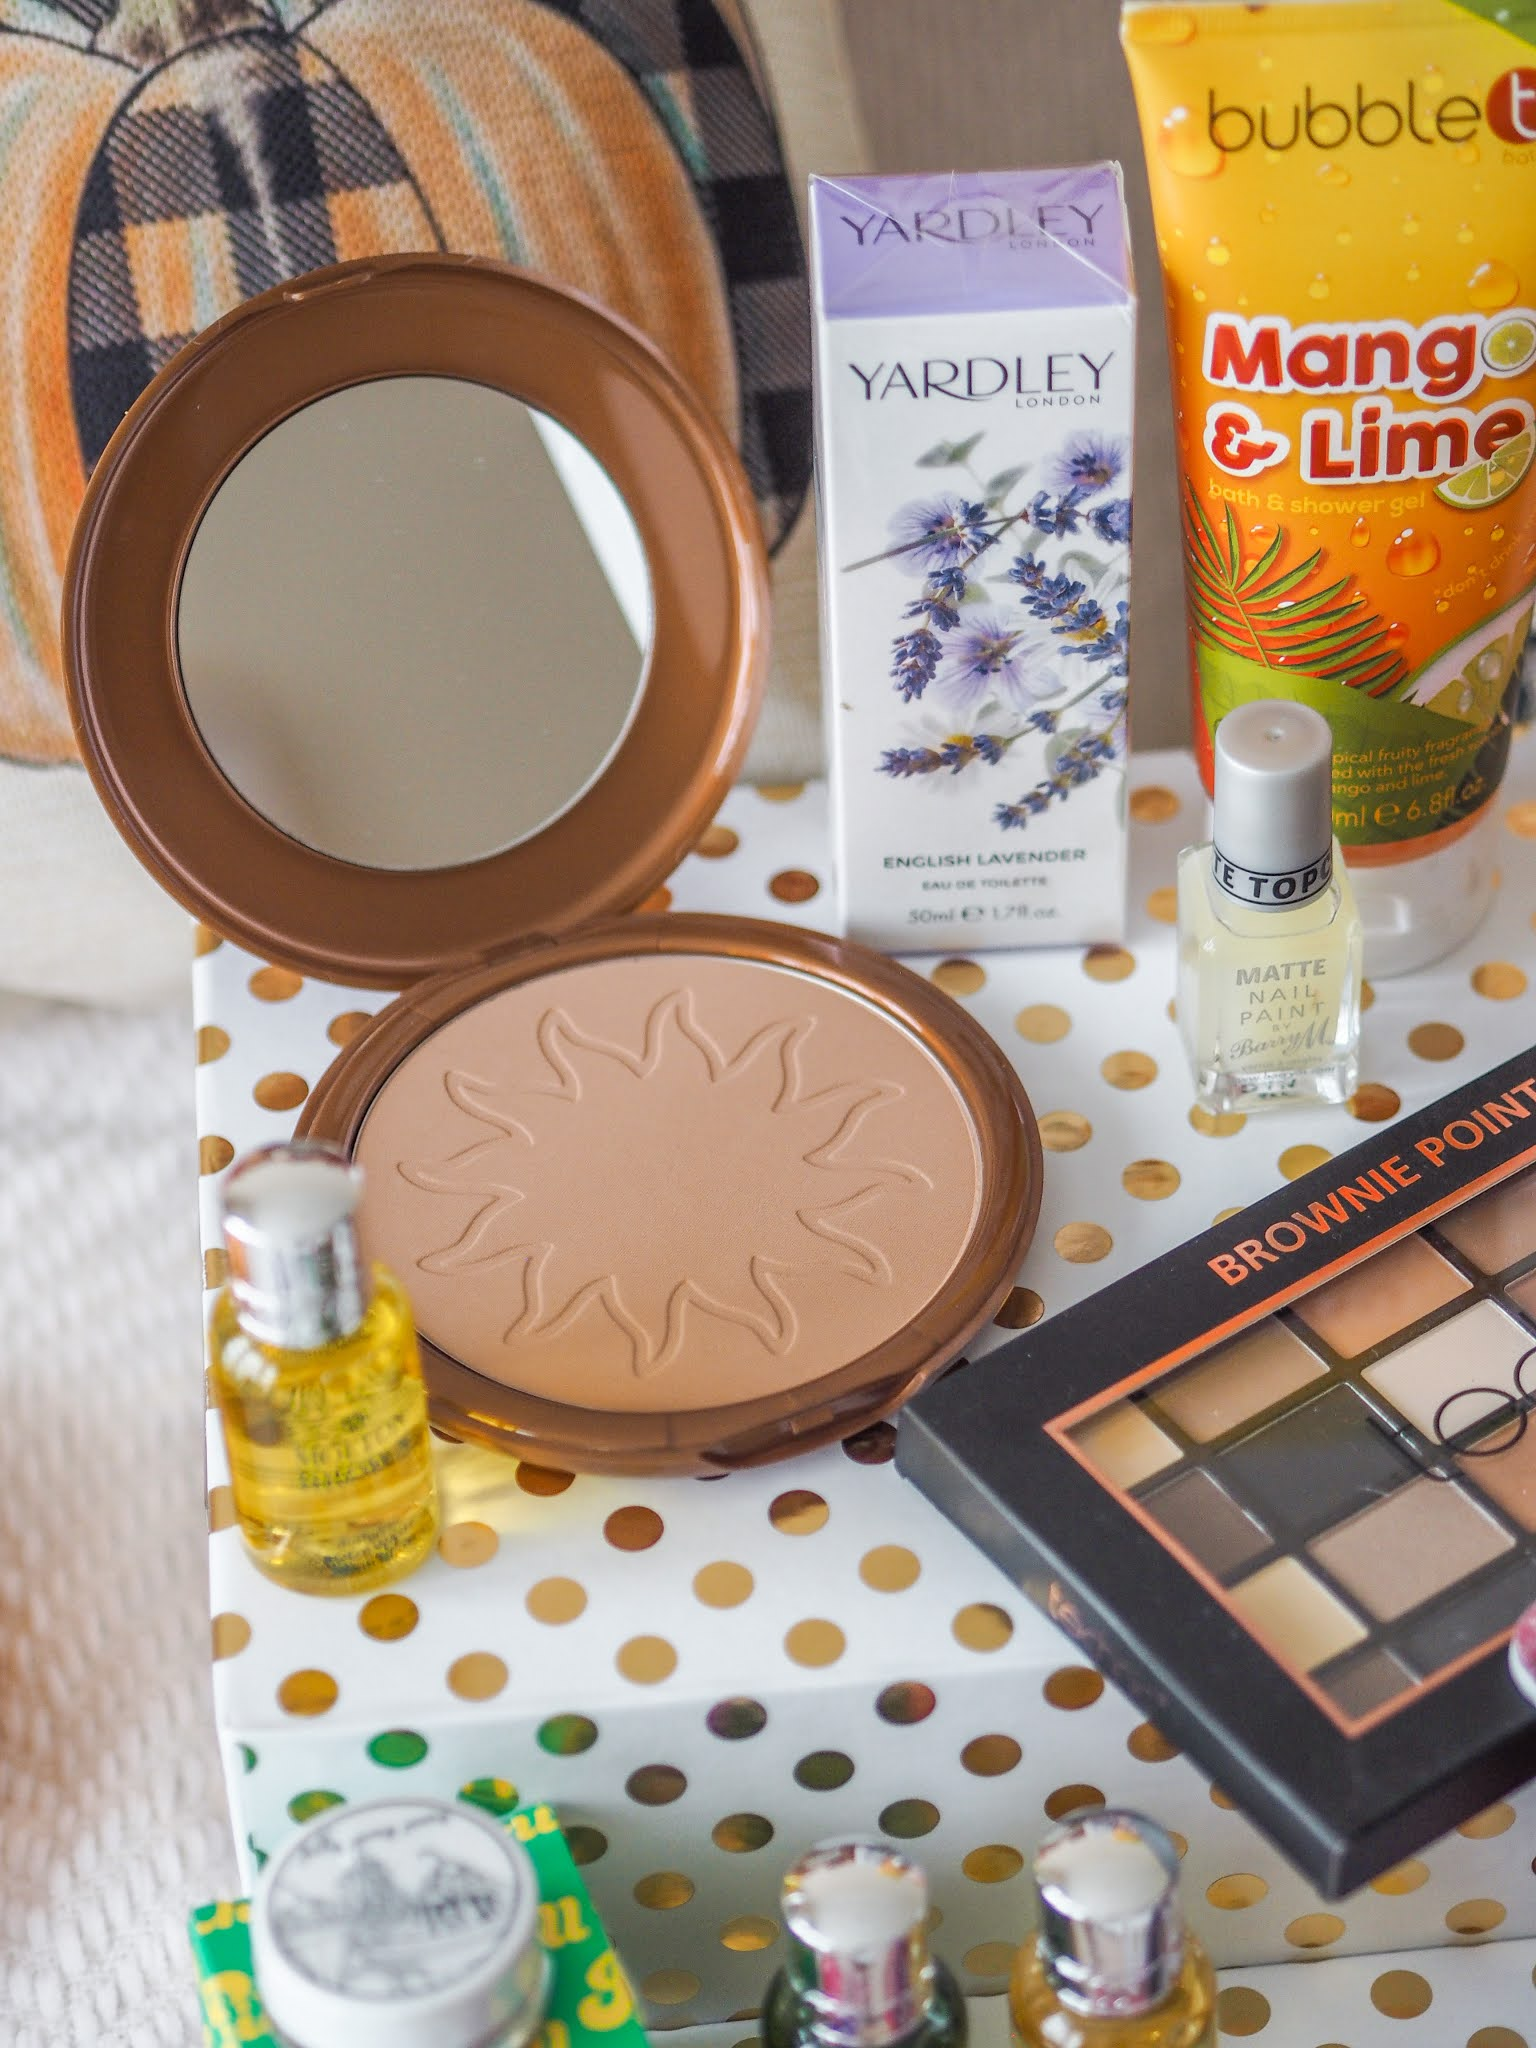 Autumn Giveaway, UK Blogger, Katie Kirk Loves, UK Competition, Win It, Beauty Giveaway, Rafflecopter Gibeaway, 2020 Giveaway